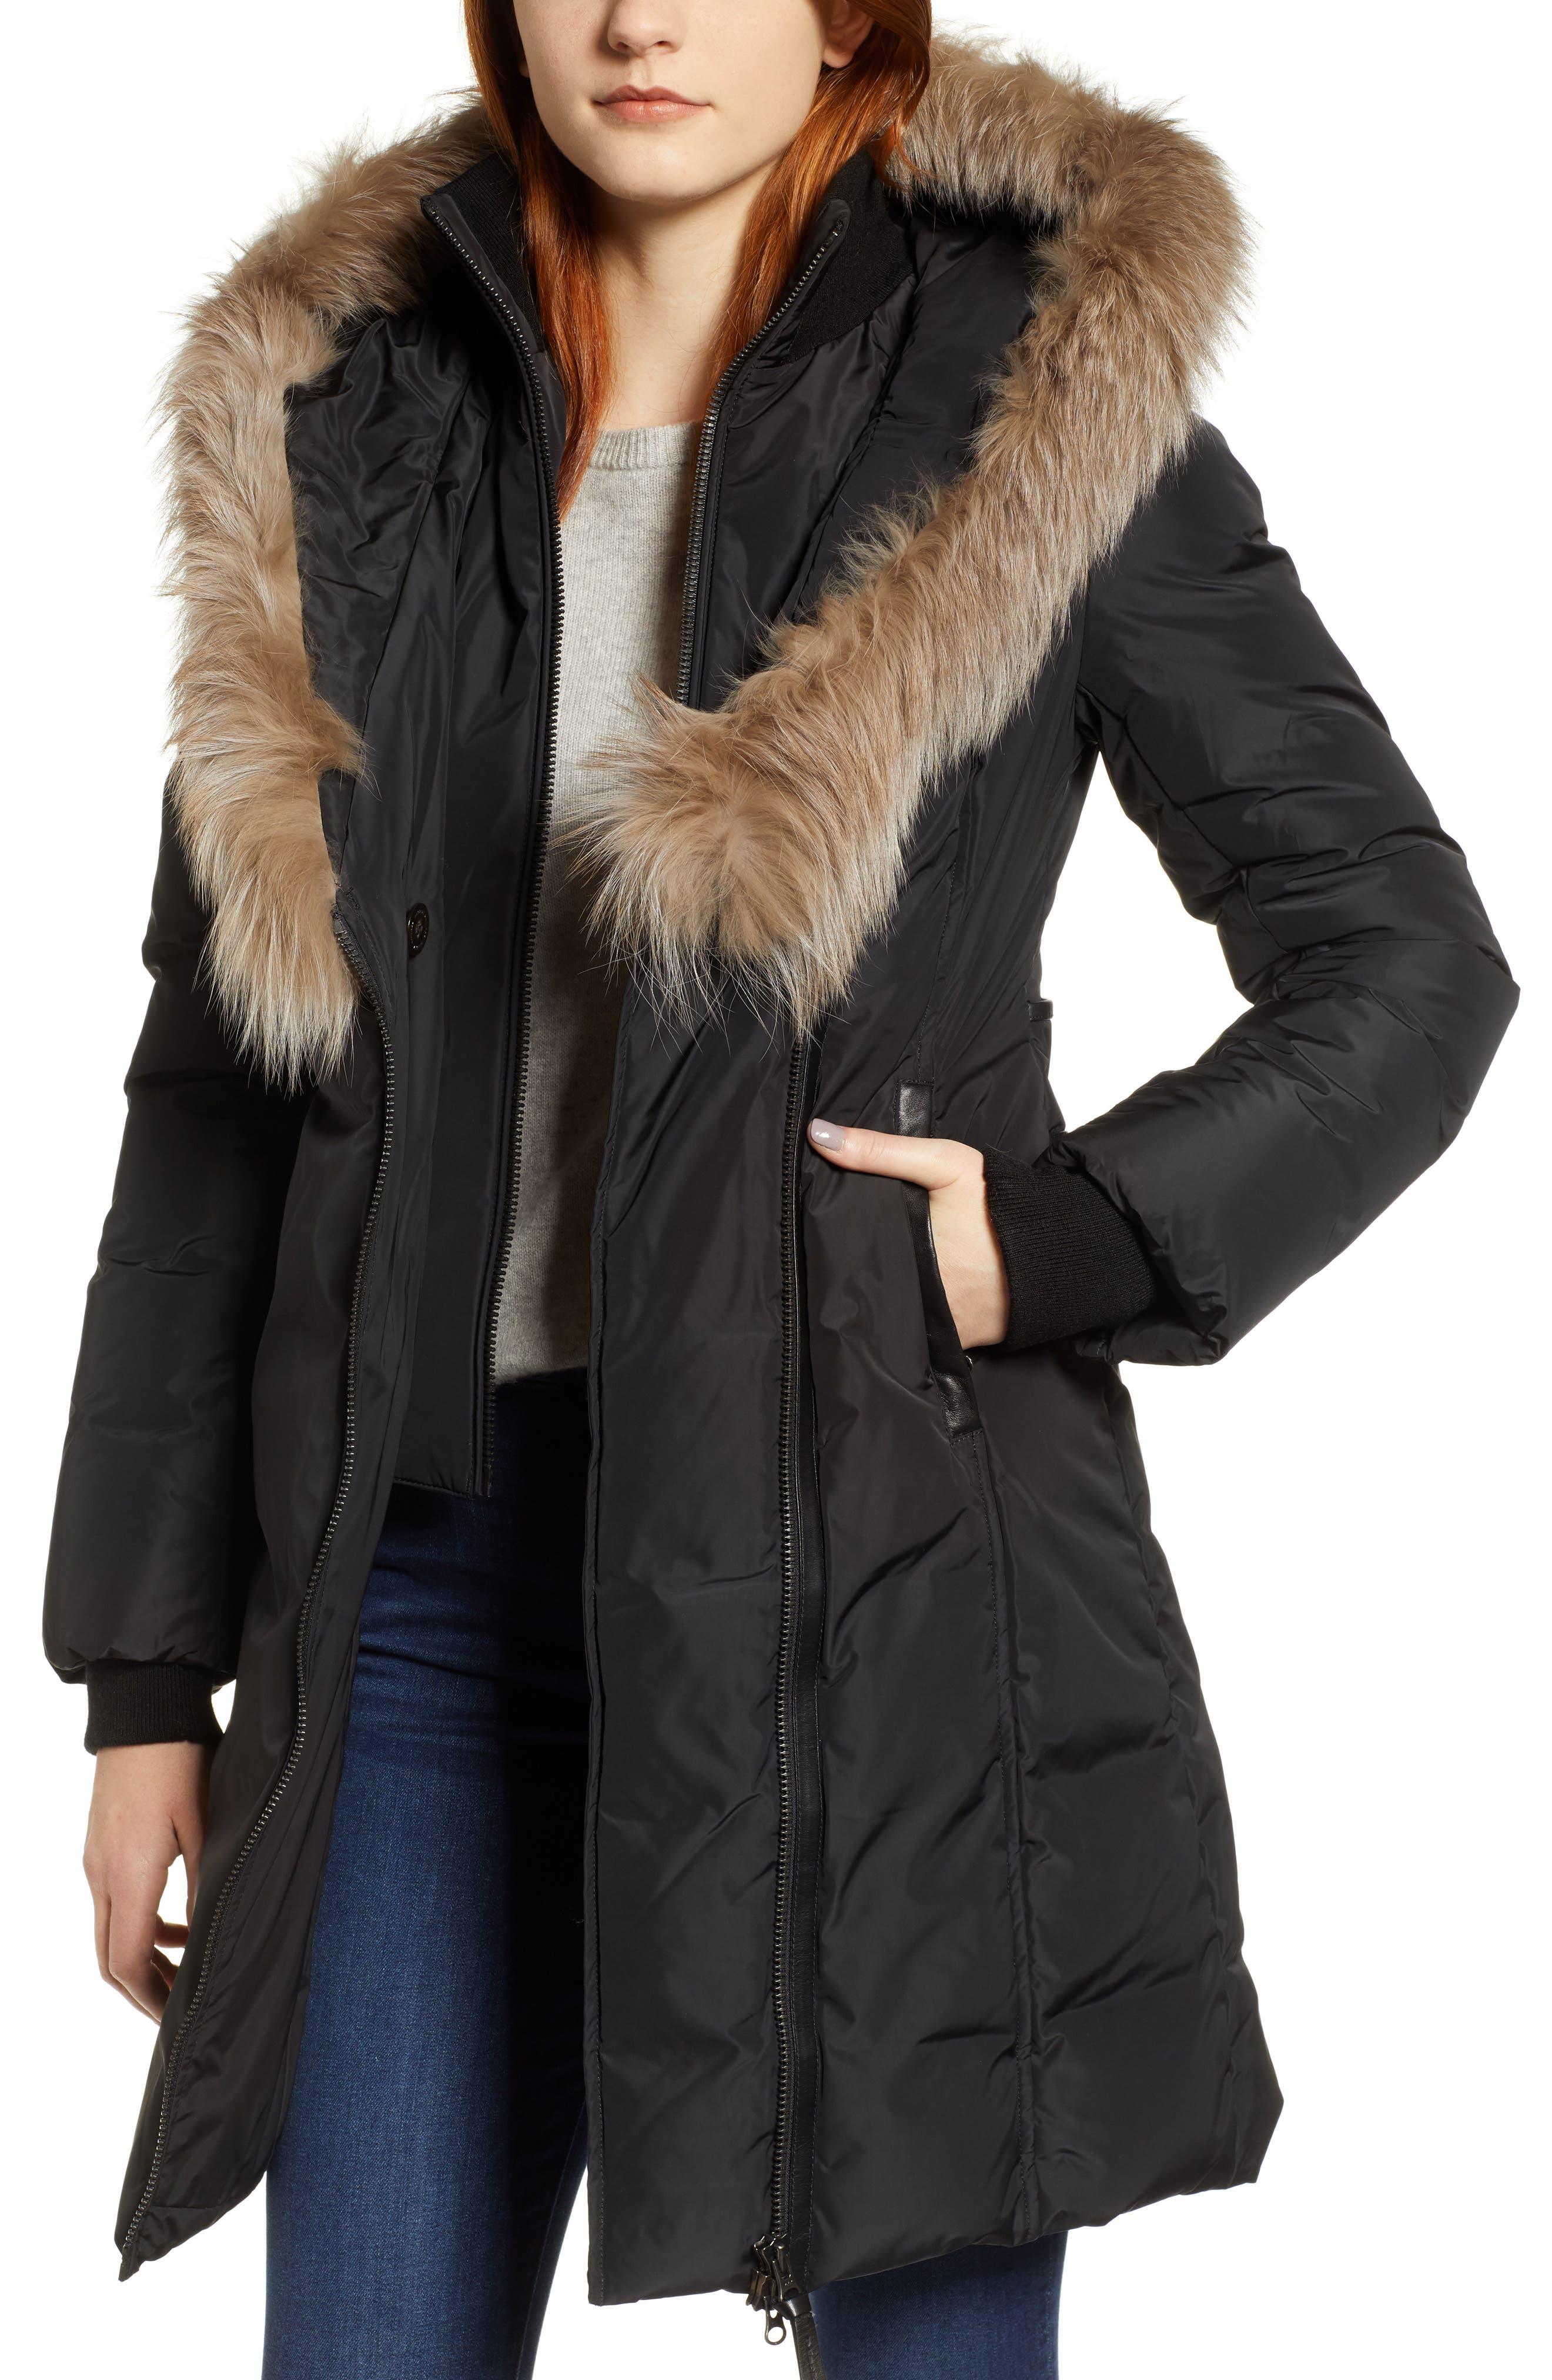 MACKAGE 800 Fill Power Down Coat with Genuine Fox Fur Trim, Main, color, 001